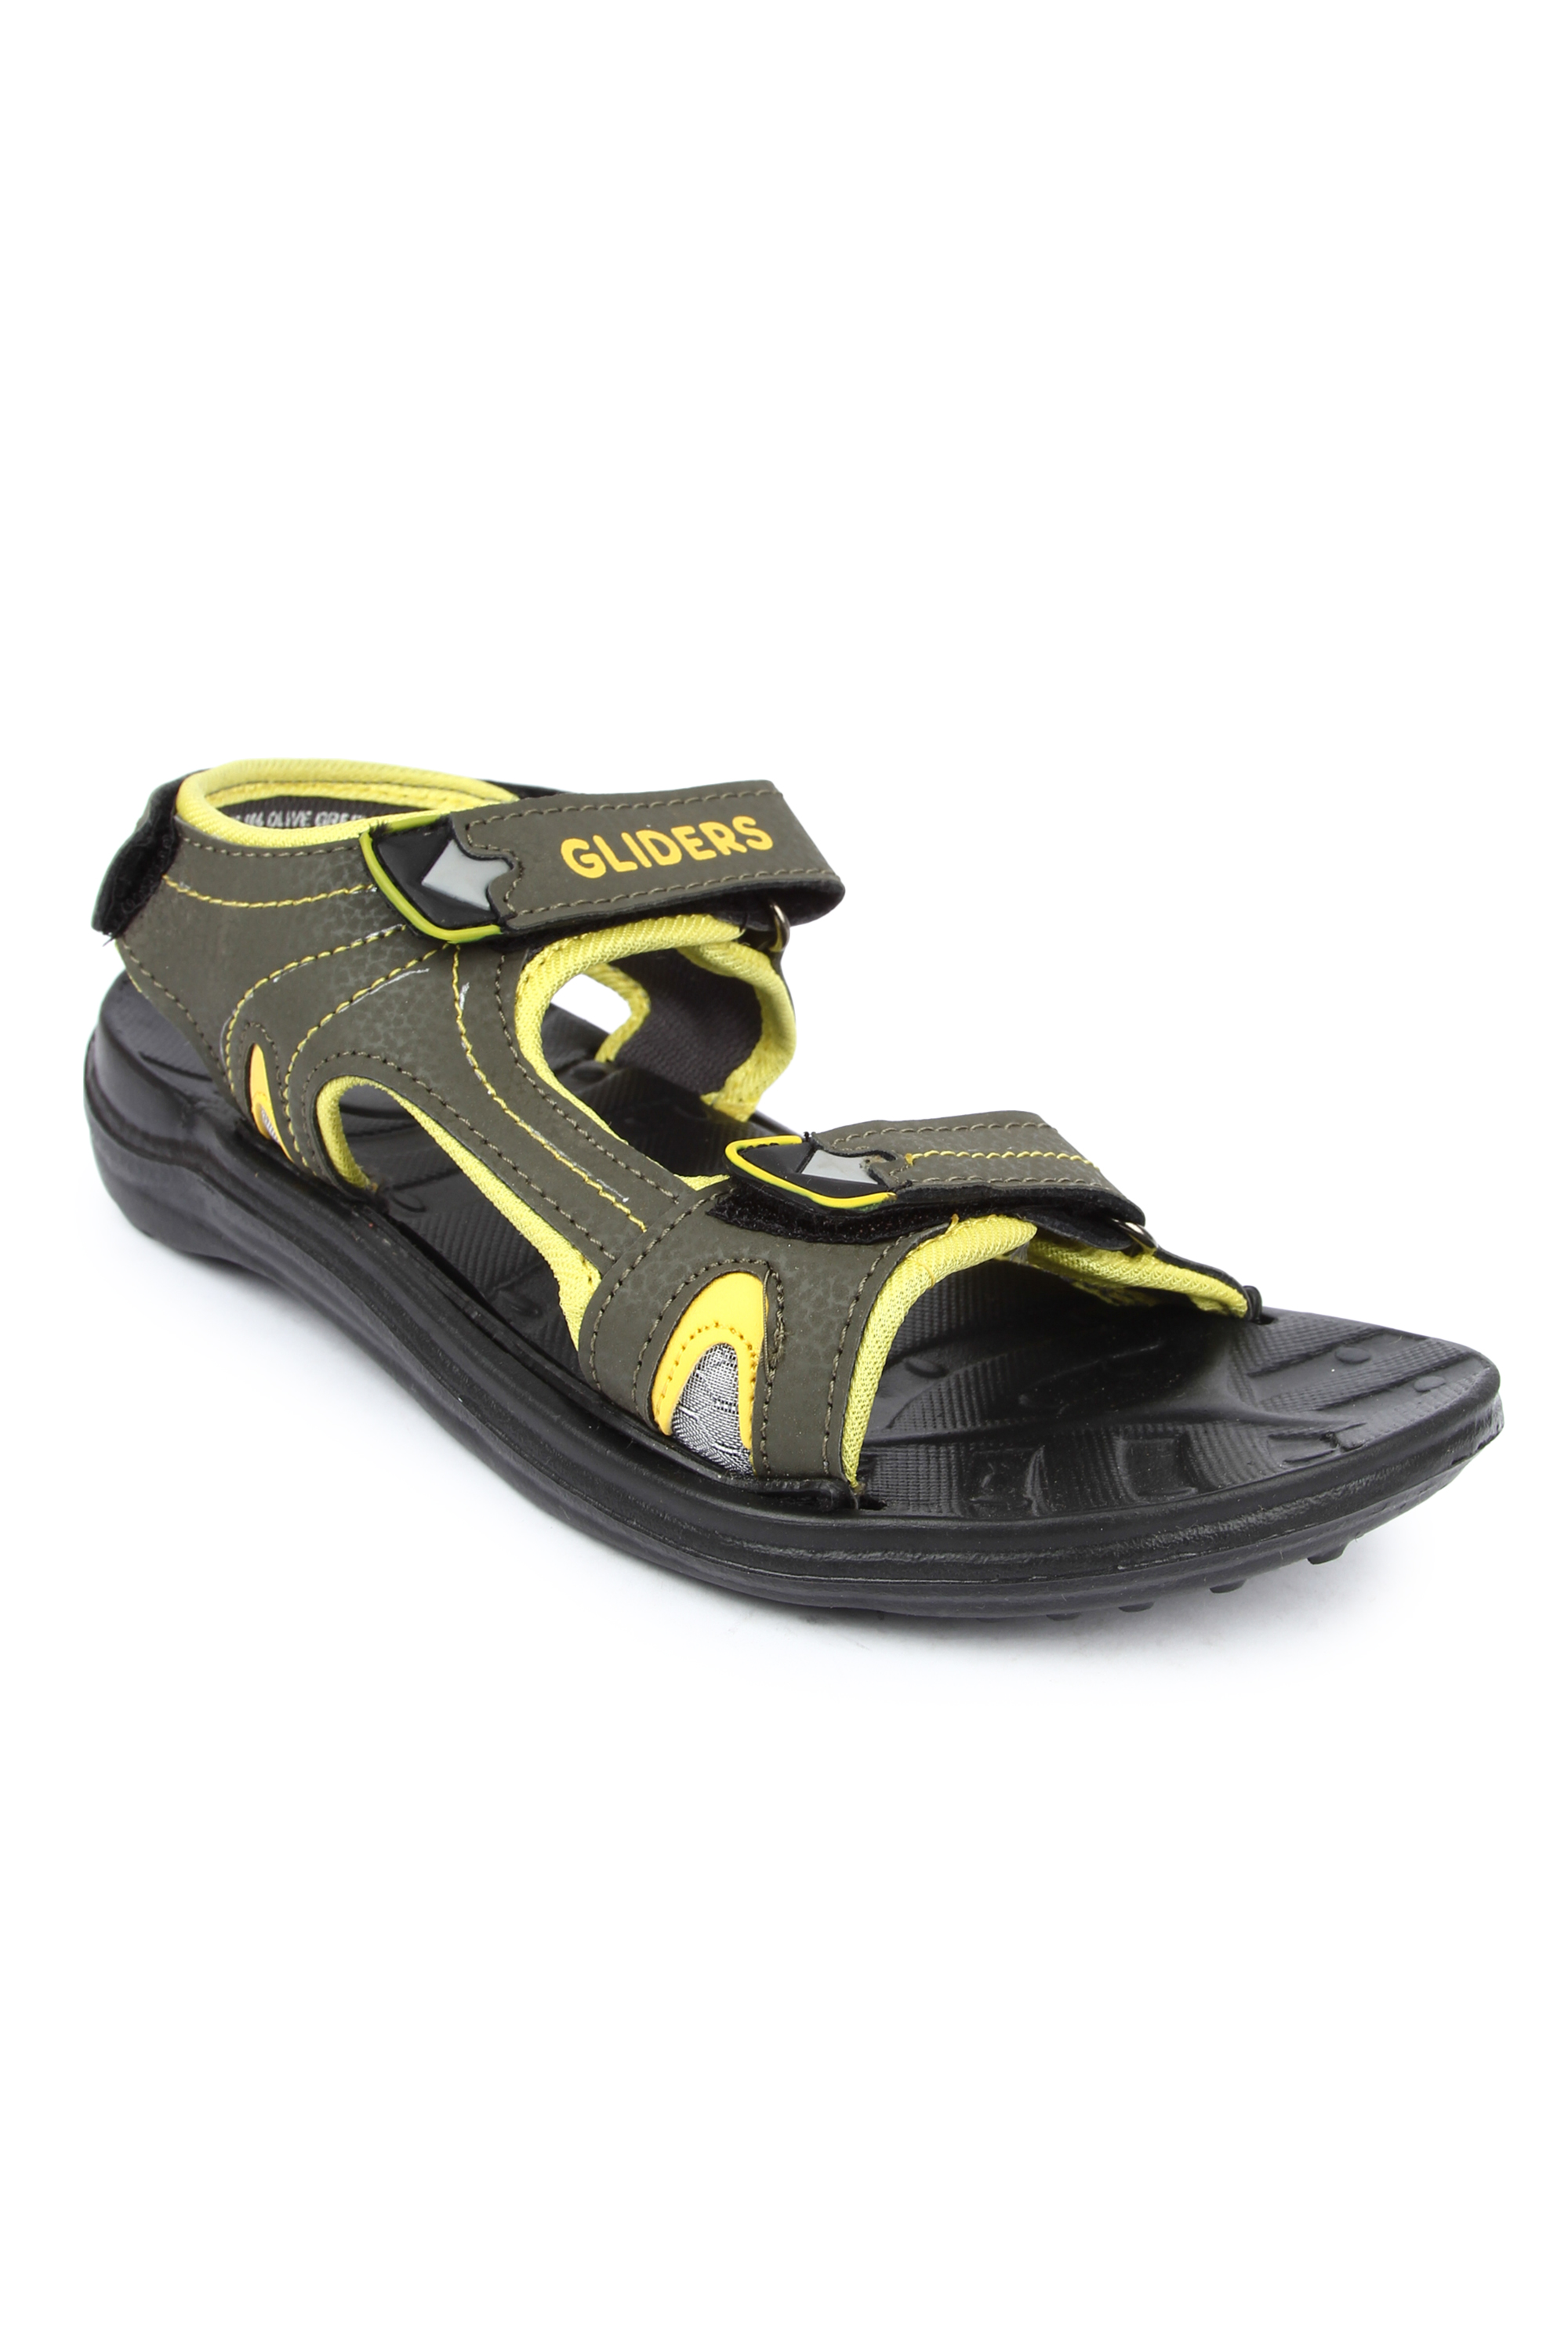 Liberty | Liberty Gliders Green Sandals 9930-106 For - Ladies